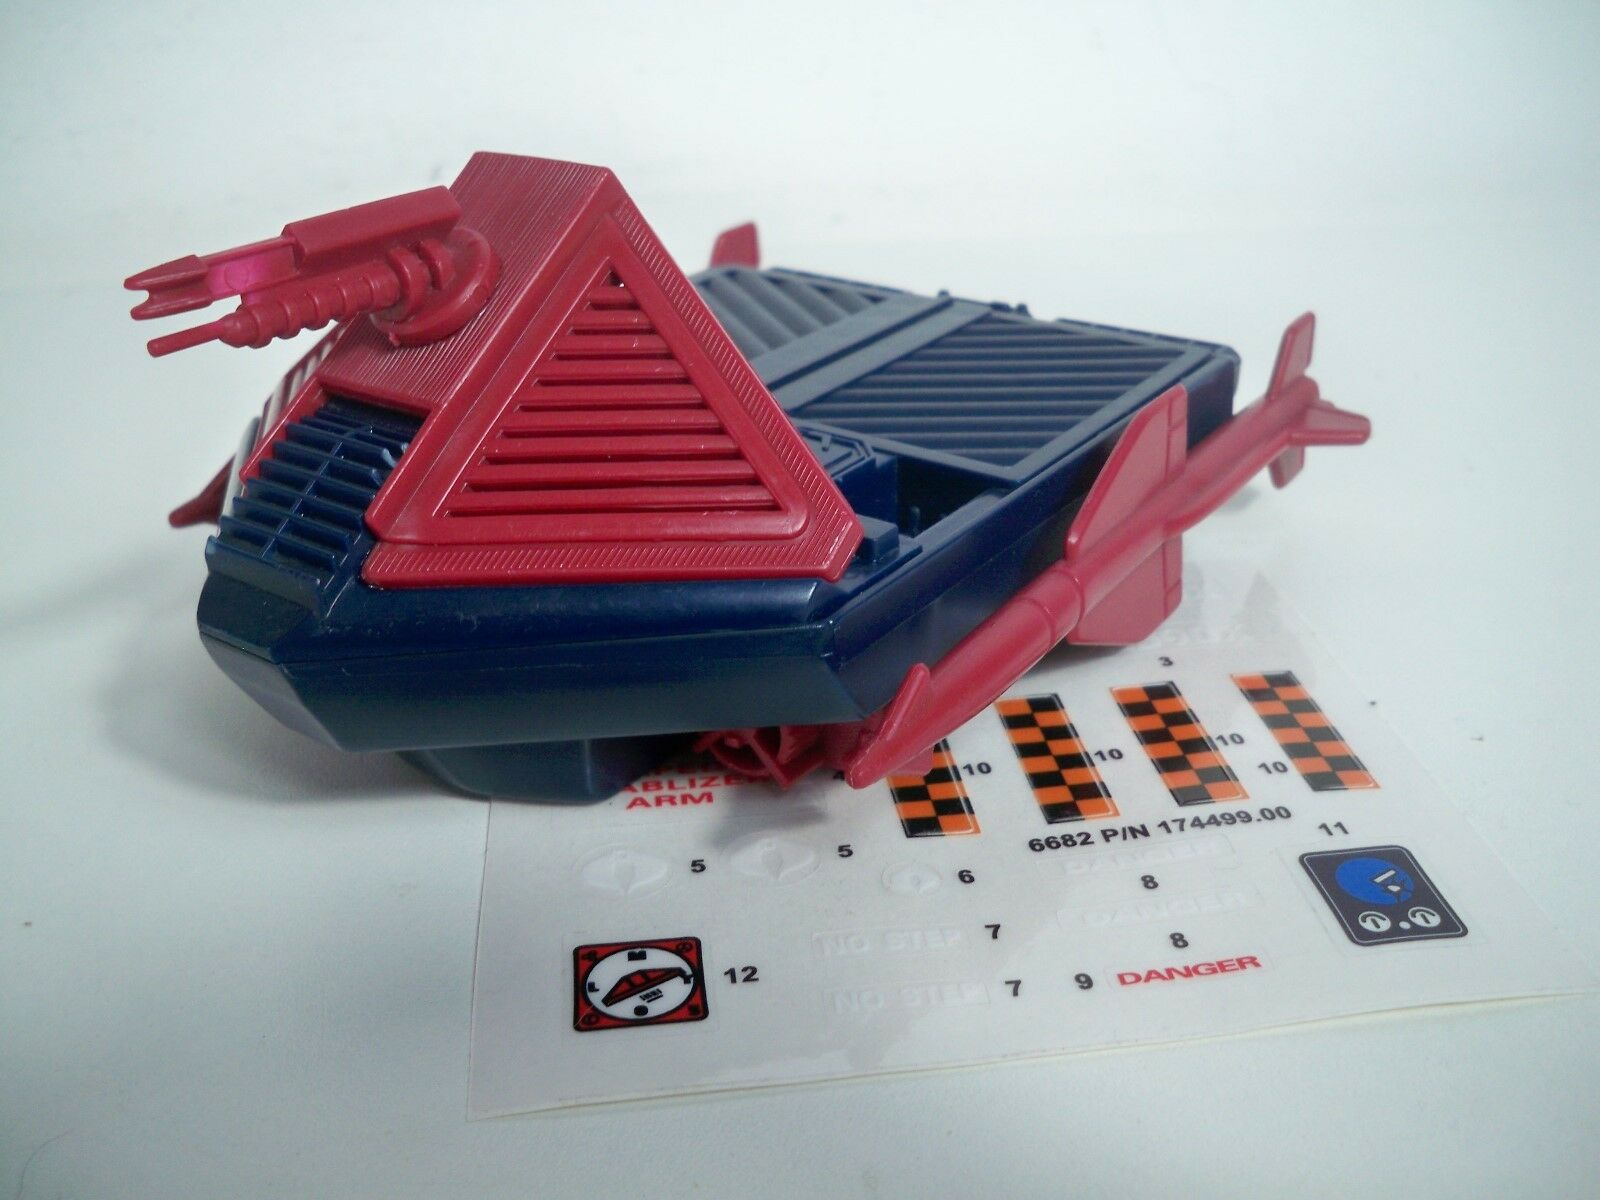 K197412 HYDROSLED W REPRO DECALS 1986 GI JOE COBRA 100% COMPLETE VINTAGE